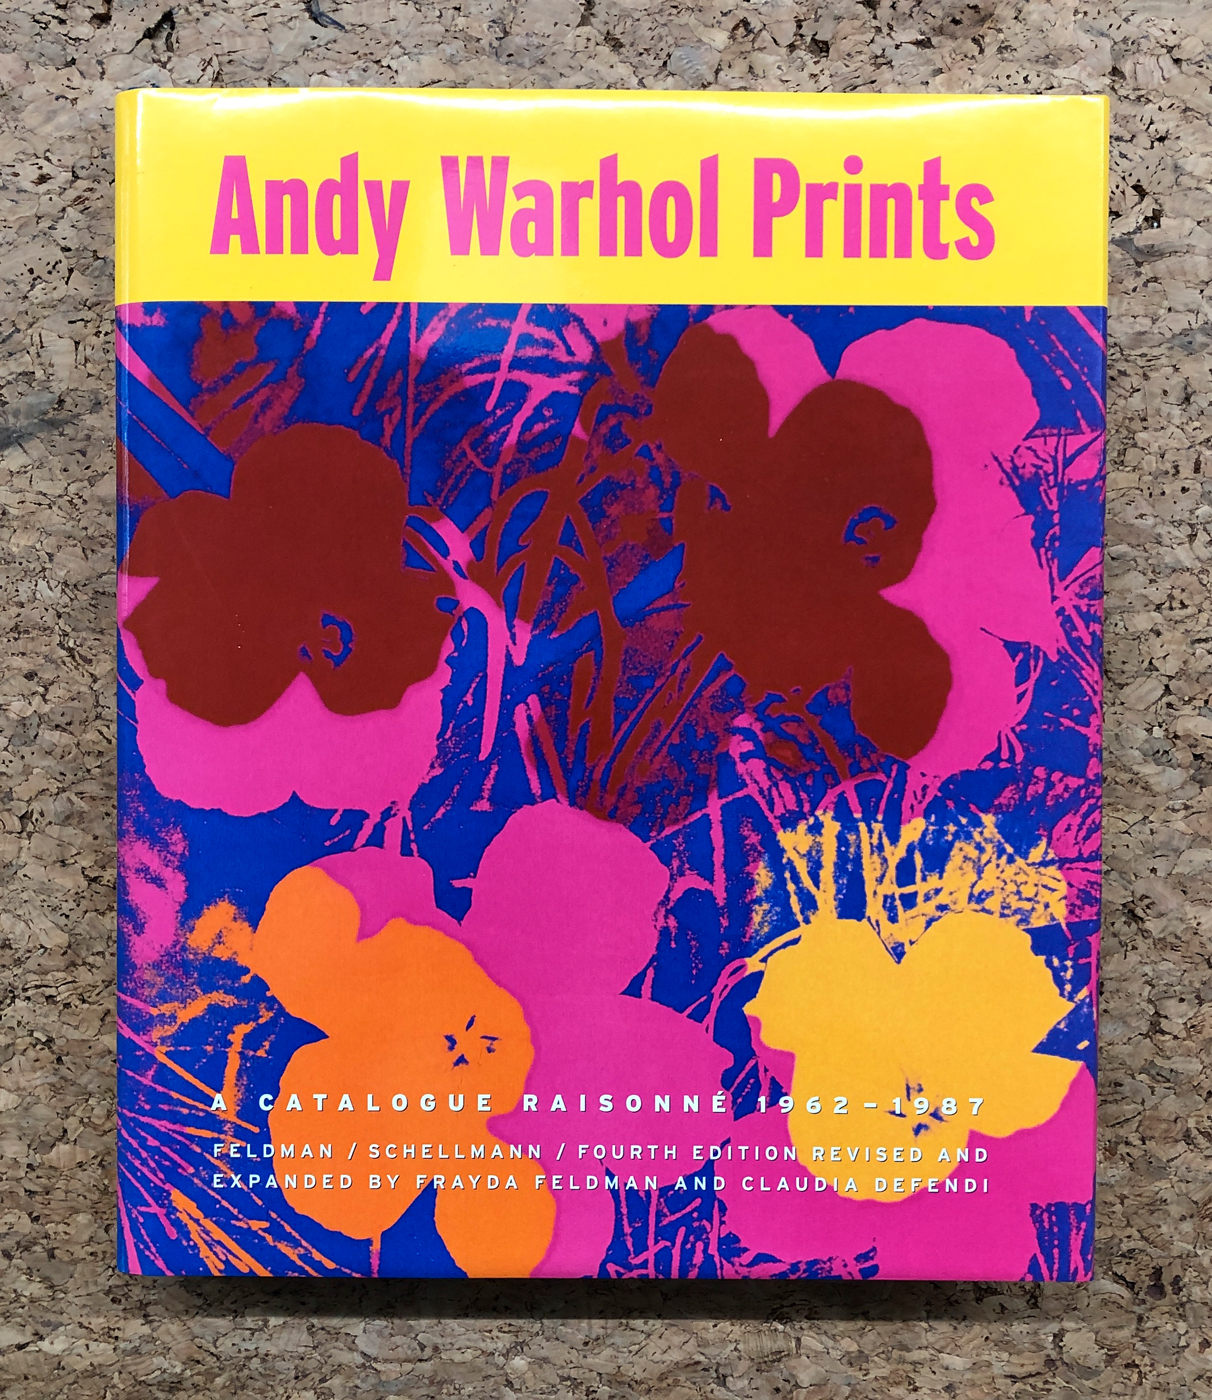 ANDY WARHOL - Andy Warhol Prints. A catalogue raisonné 1962-1987, 2003